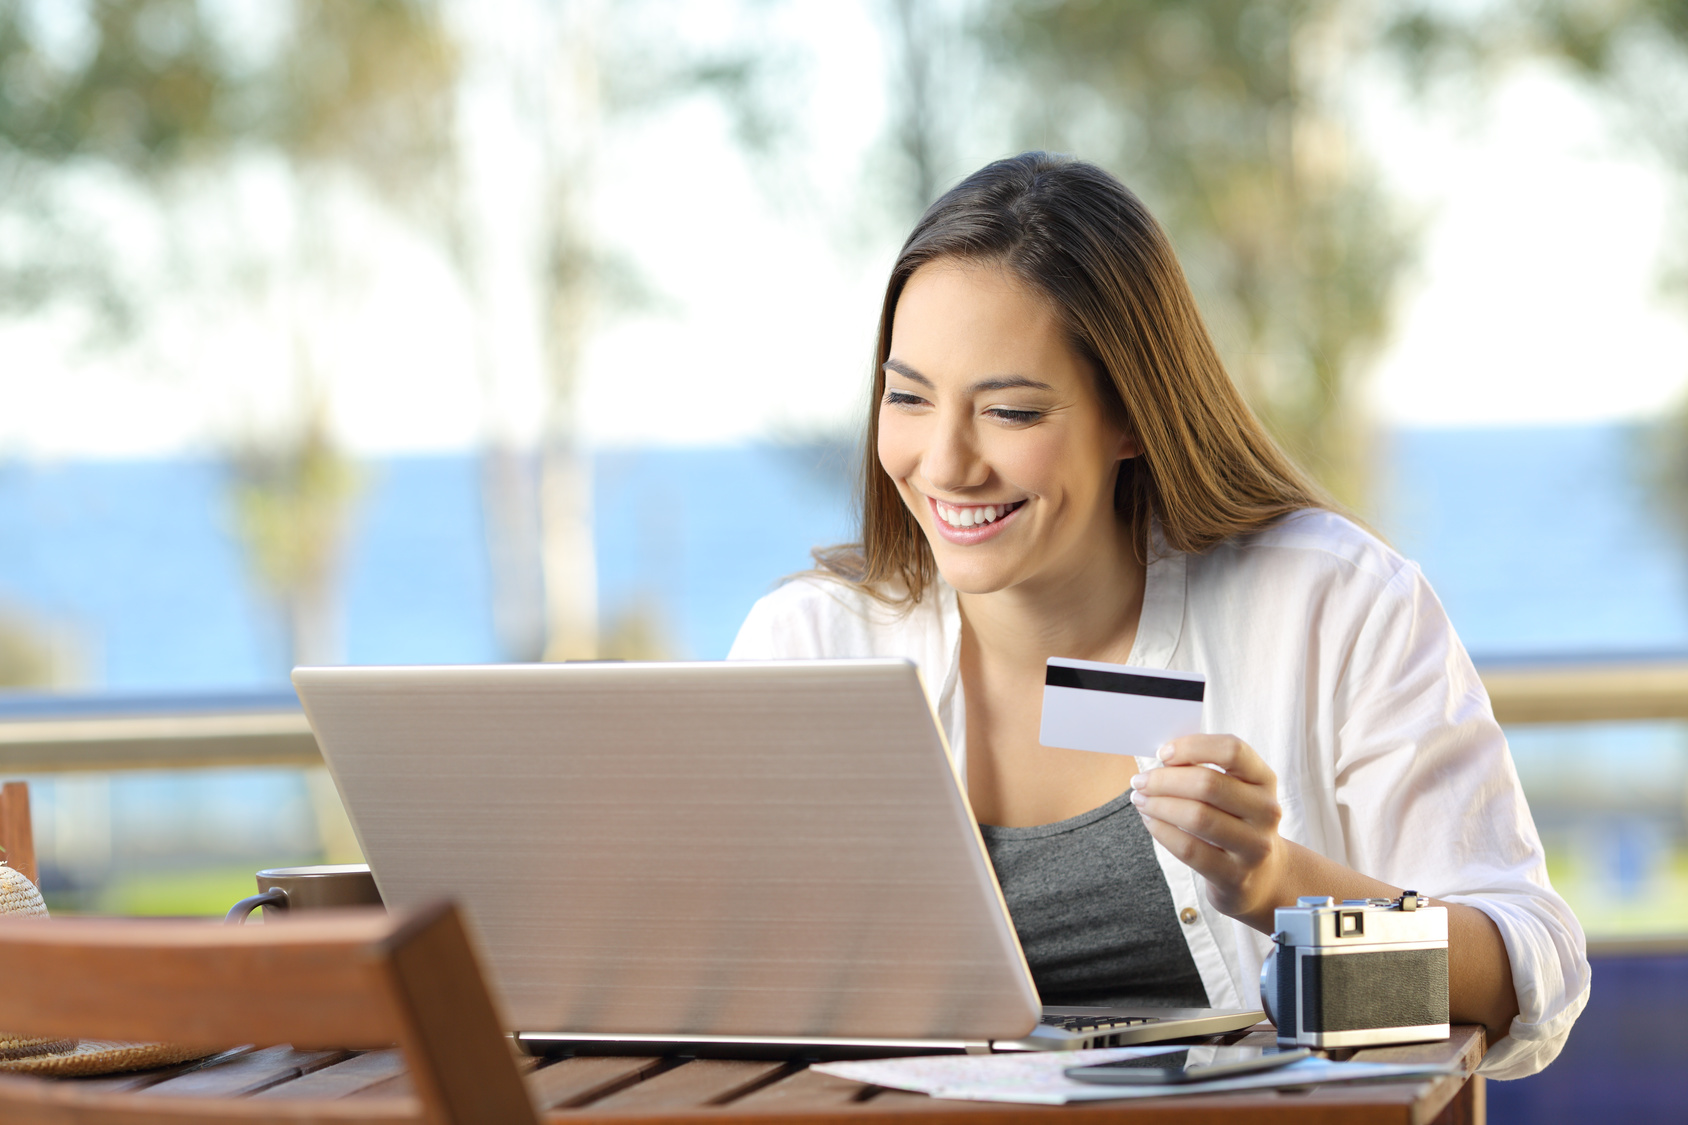 Tourist paying online with a credit card at hotel